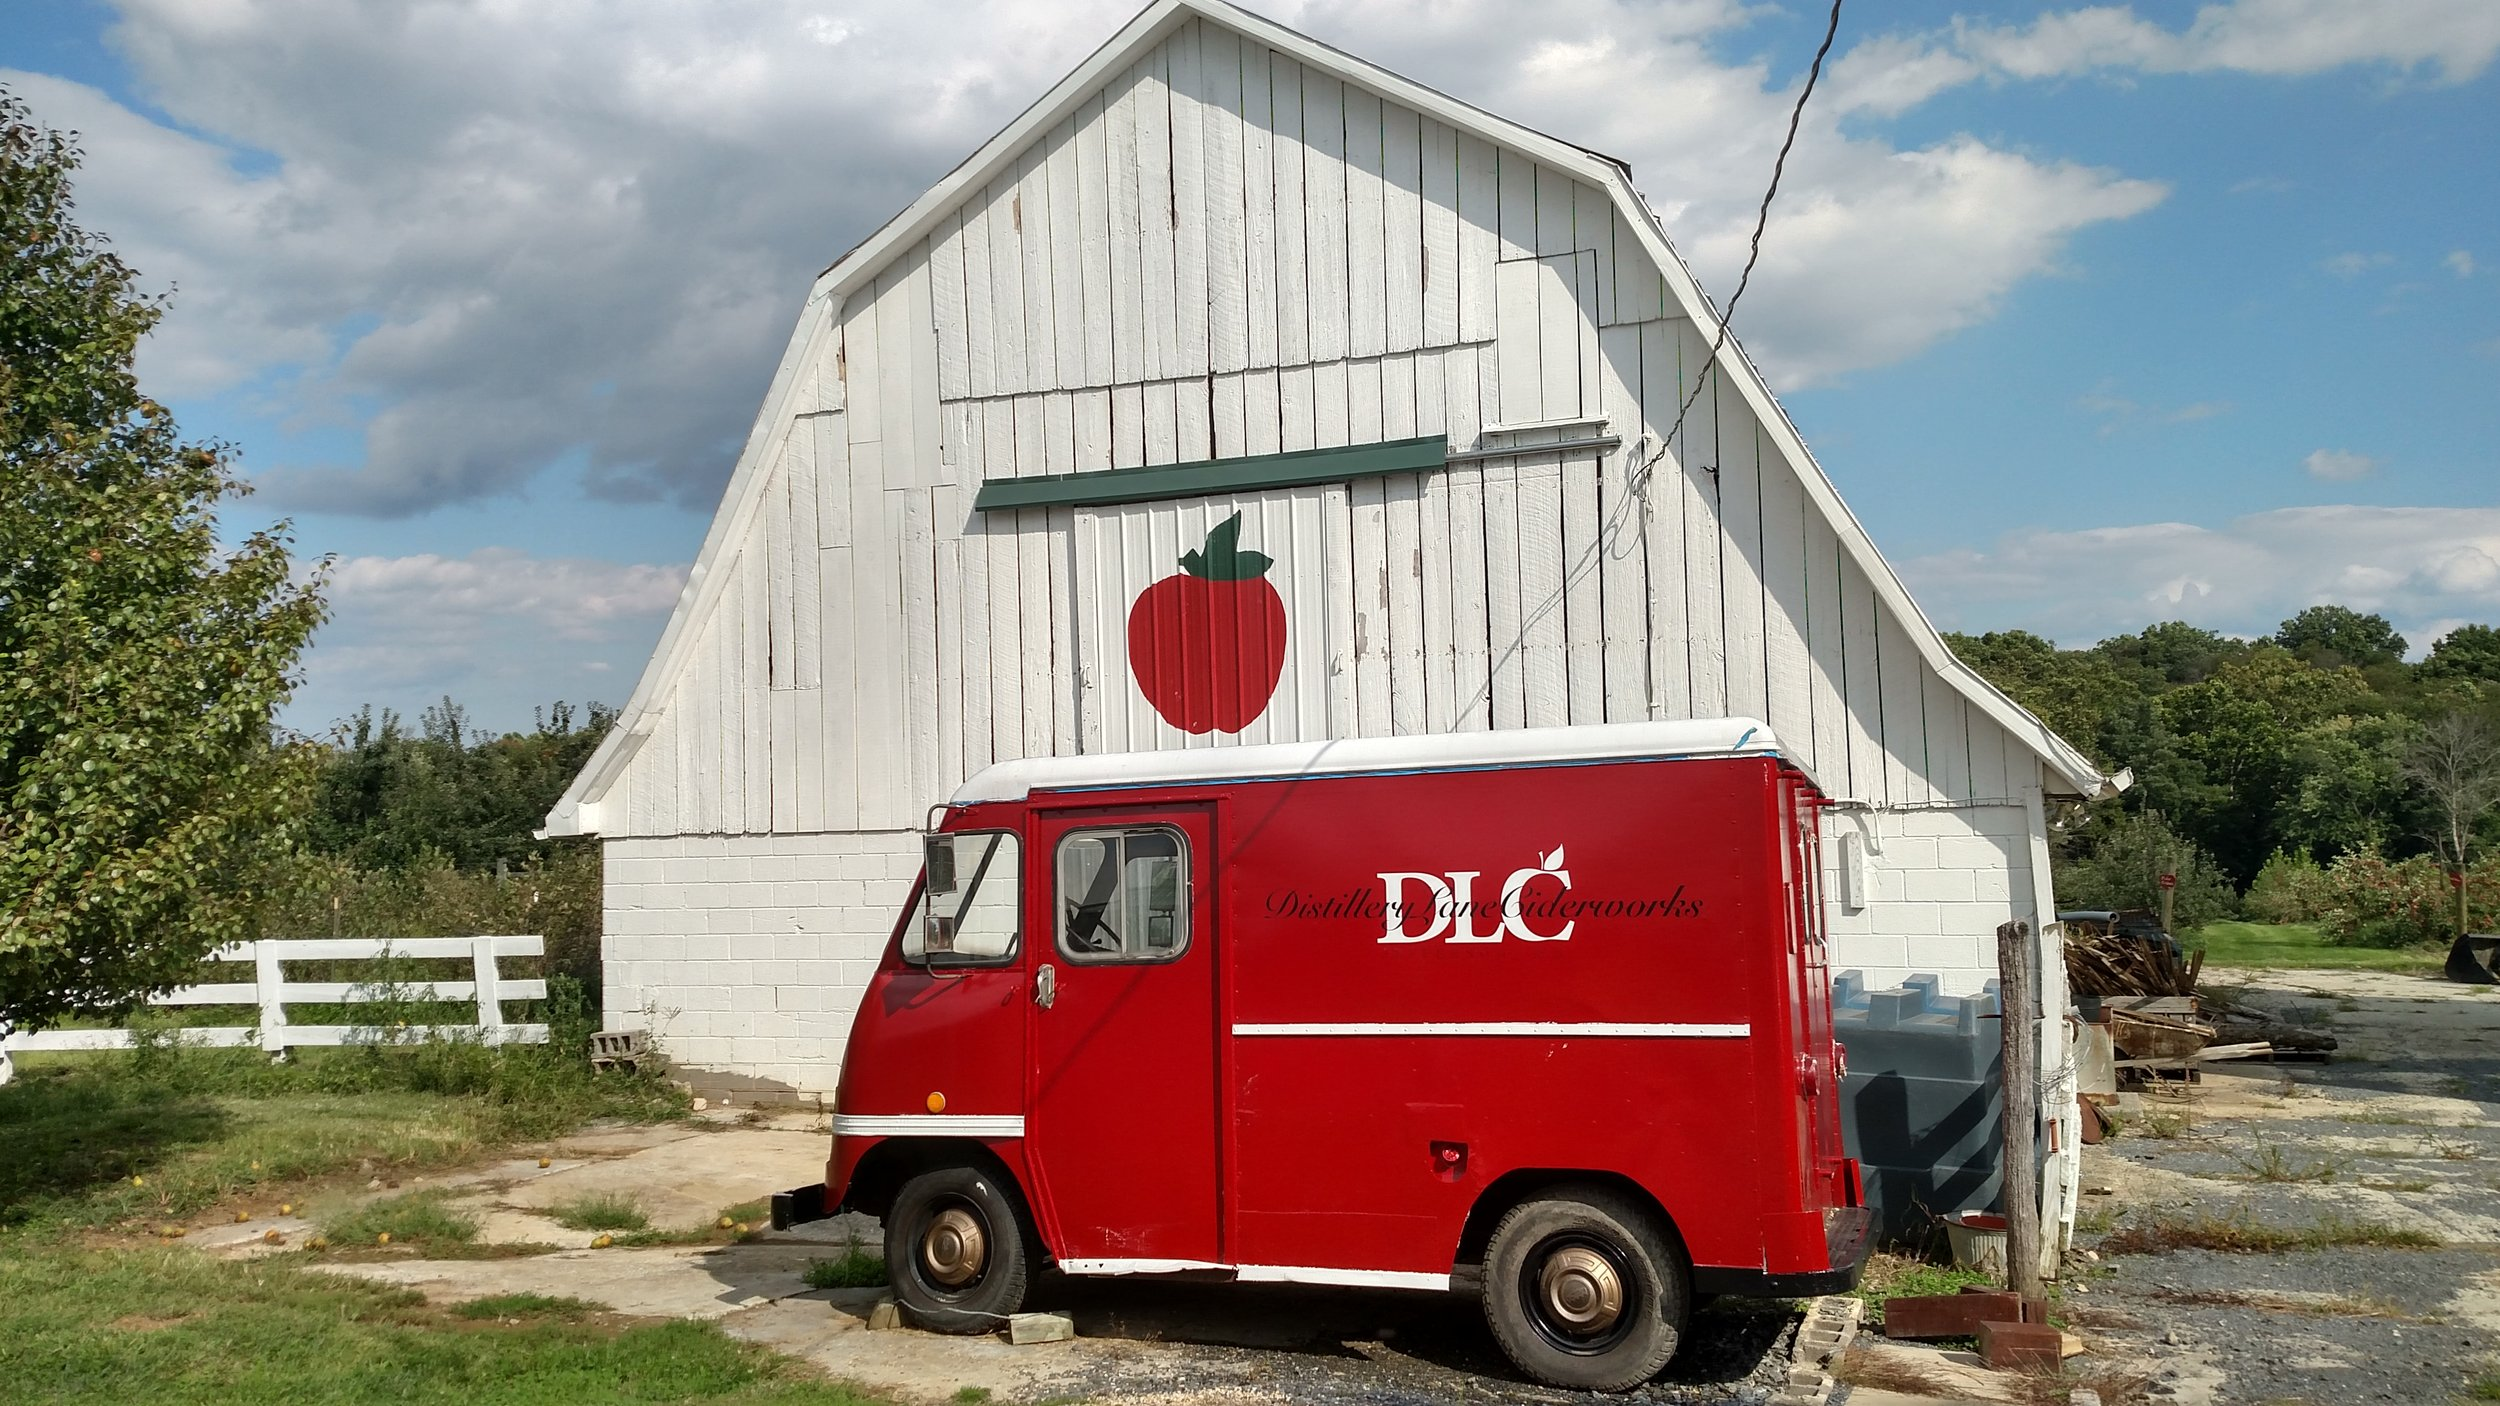 The Western Maryland cidery, Distillery Lane Ciderworks, where our tasting ciders are made!